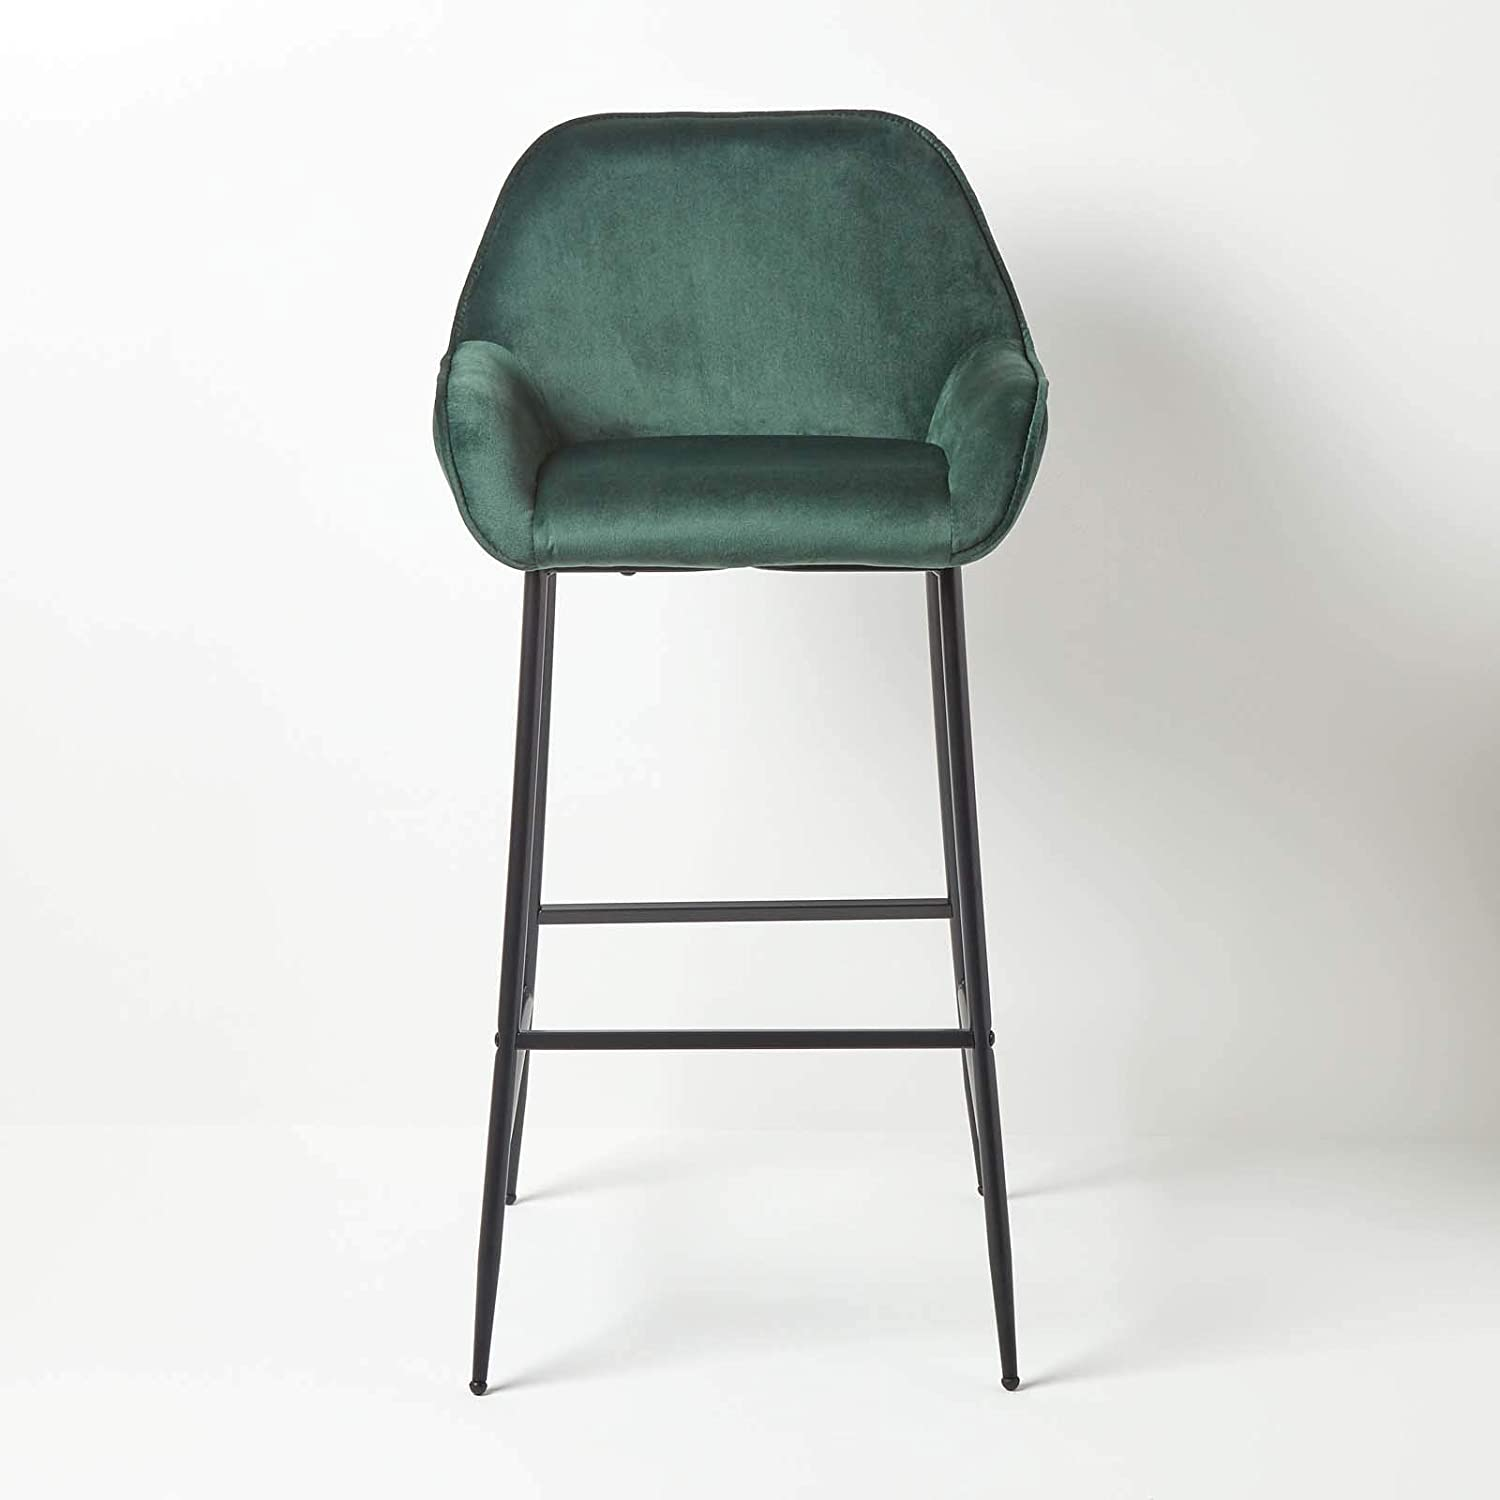 Seat 77cm Tall HOMESCAPES /'Eton/' Emerald Green Velvet Bar Stool Chair On-Trend Kitchen and Breakfast Barstool with Backrest On Metal Legs with Footrest Upholstered High Counter Dining Chair